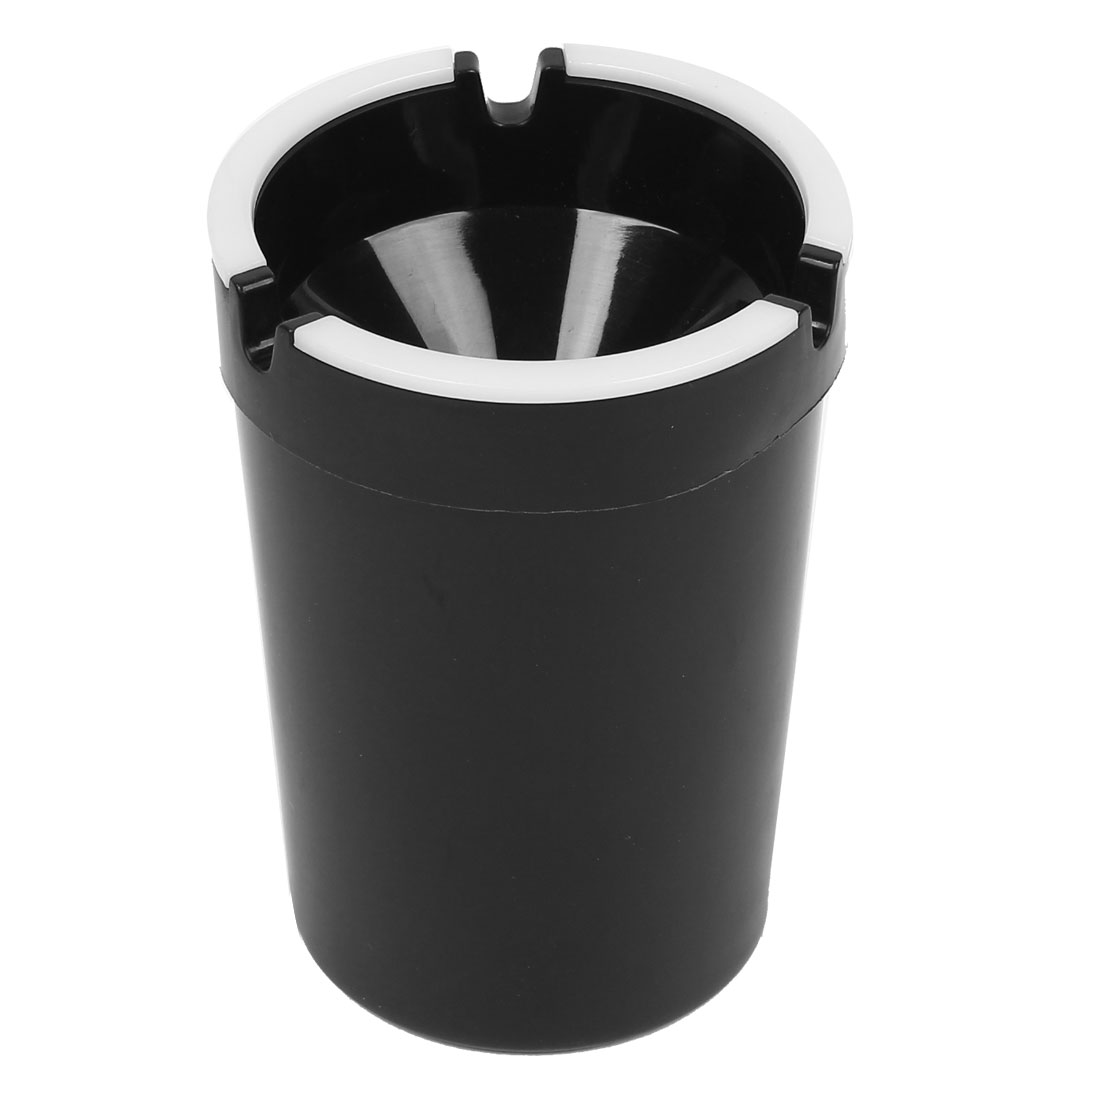 Car White Black Noctilucence Cup Shape Cigar Cigarette Ash Holder Ashtray Container